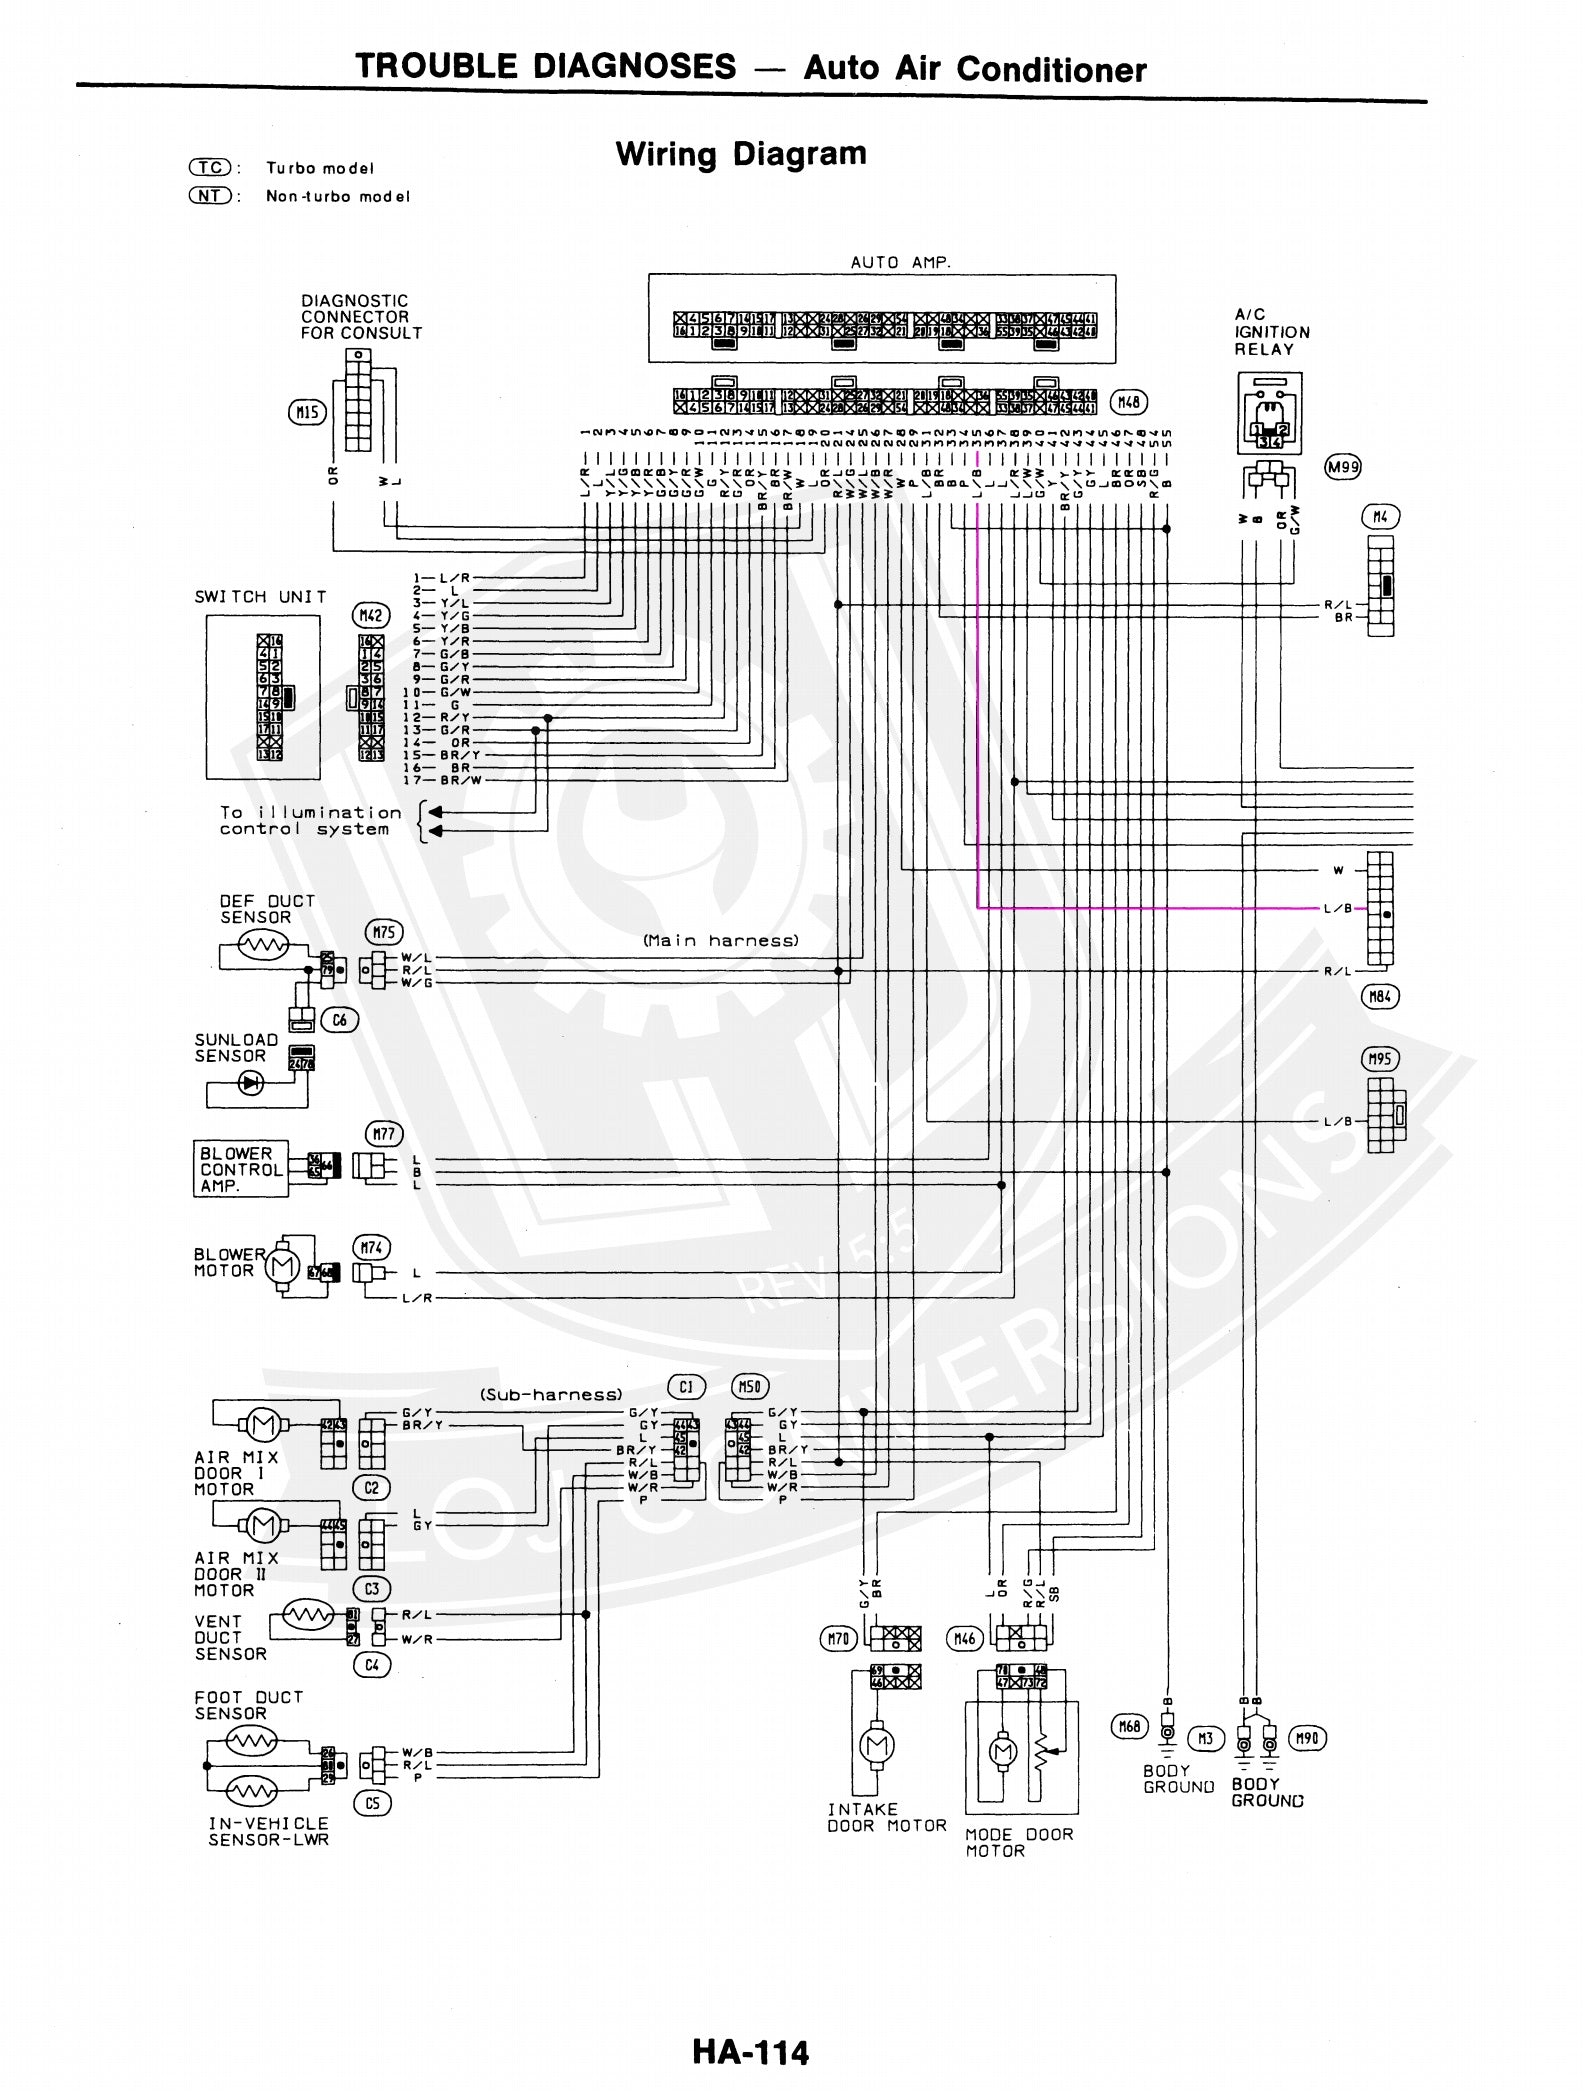 Ls1 Swap Wiring Diagrams Schematic Starter Diagram Ls Harness Labeled Schematics Data U2022 2002 Trailblazer